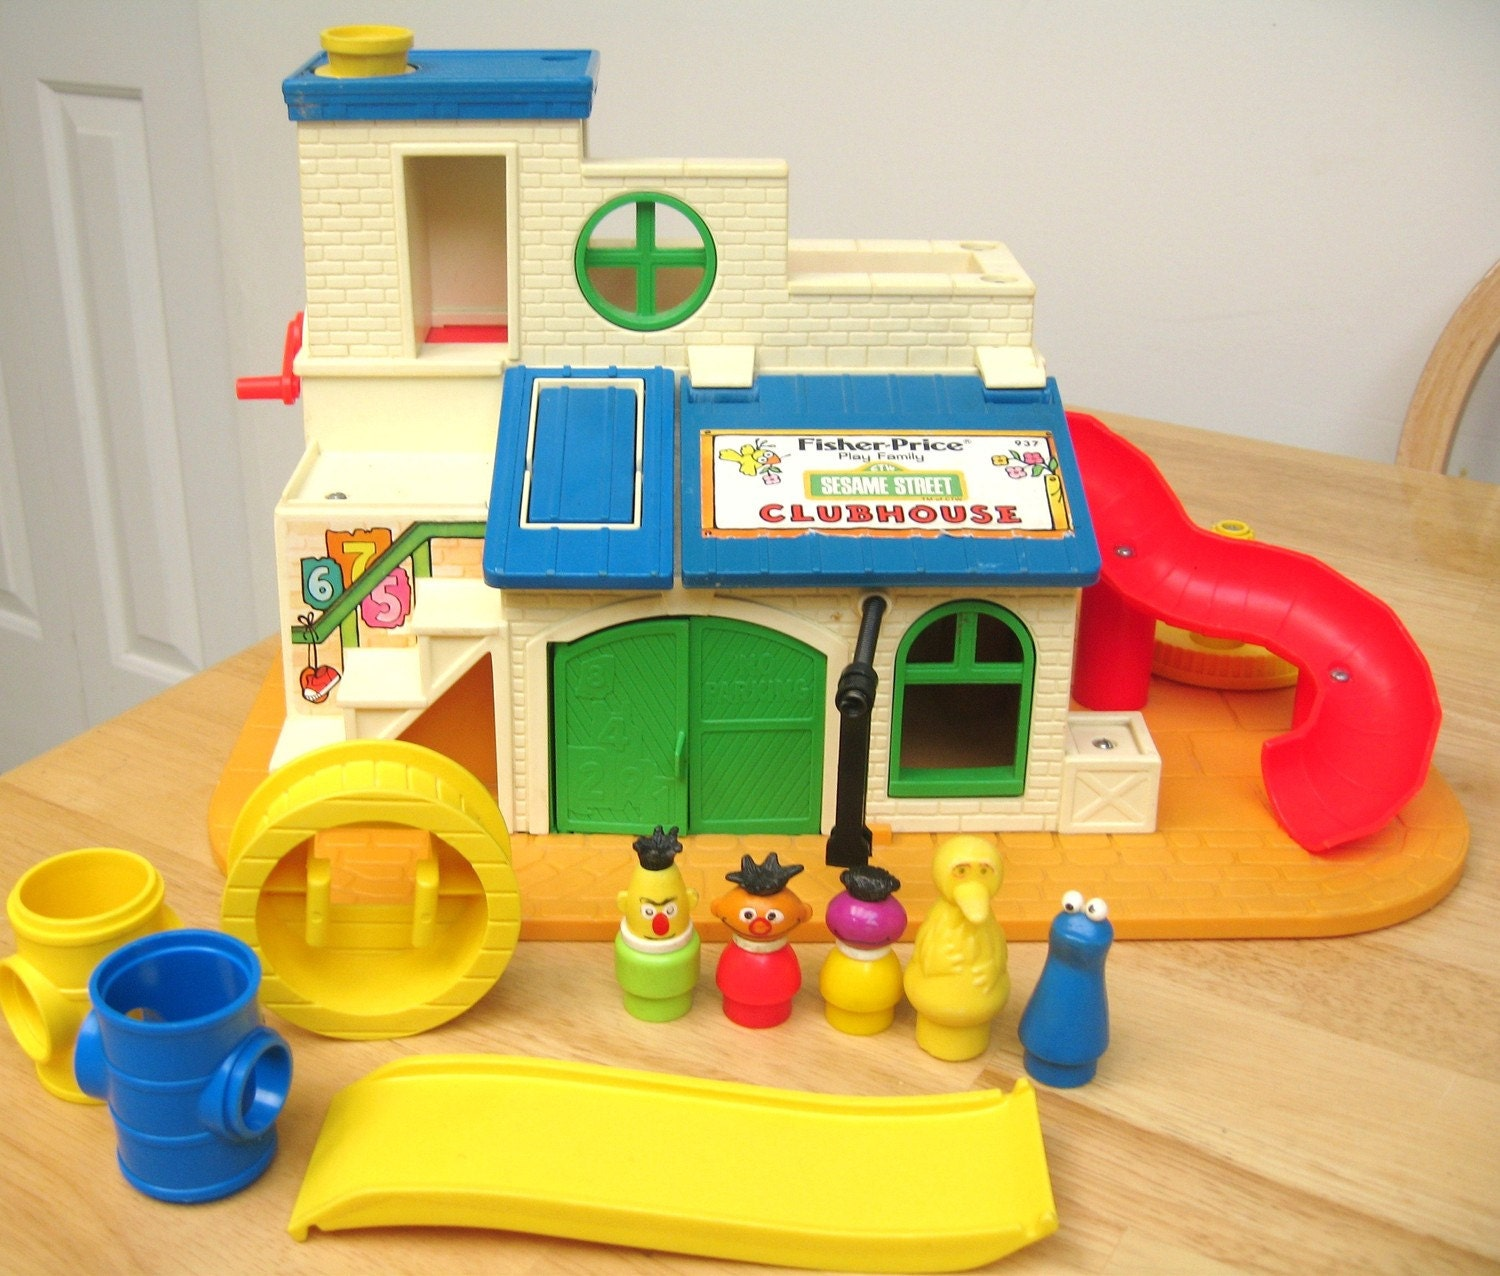 vintage fisher price sesame street clubhouse playset. Black Bedroom Furniture Sets. Home Design Ideas